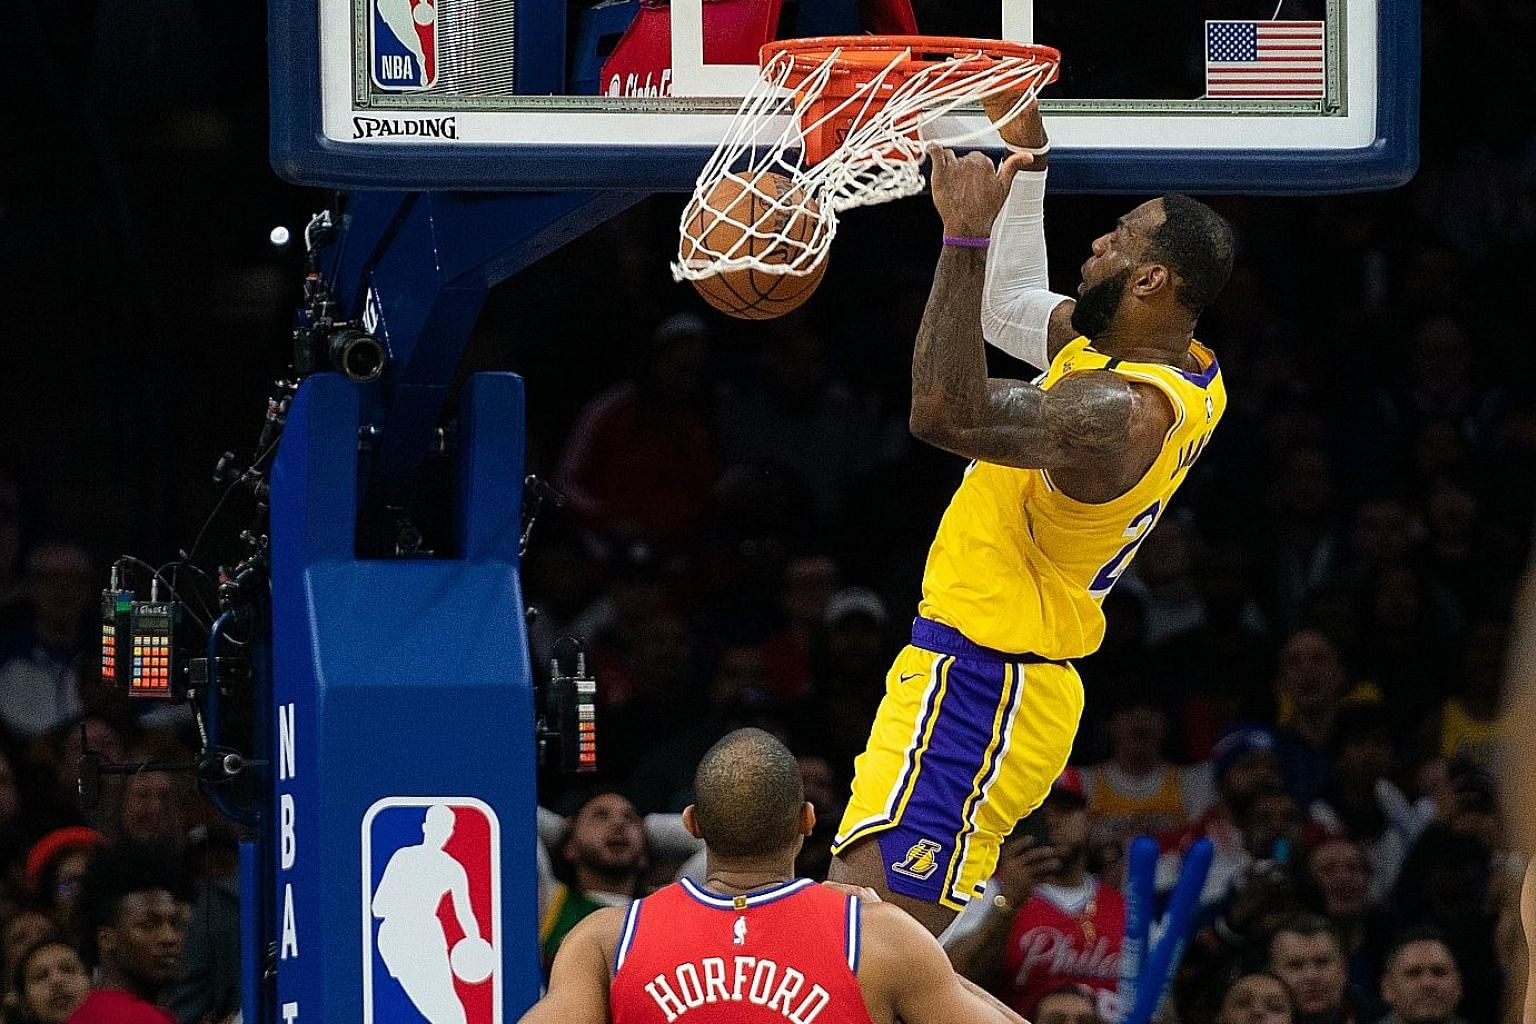 LA Lakers forward LeBron James dunking the ball over Philadelphia 76ers forward Al Horford on the way to his new career total of 33,655 points. The Lakers, however, lost 108-91 in Philadelphia.